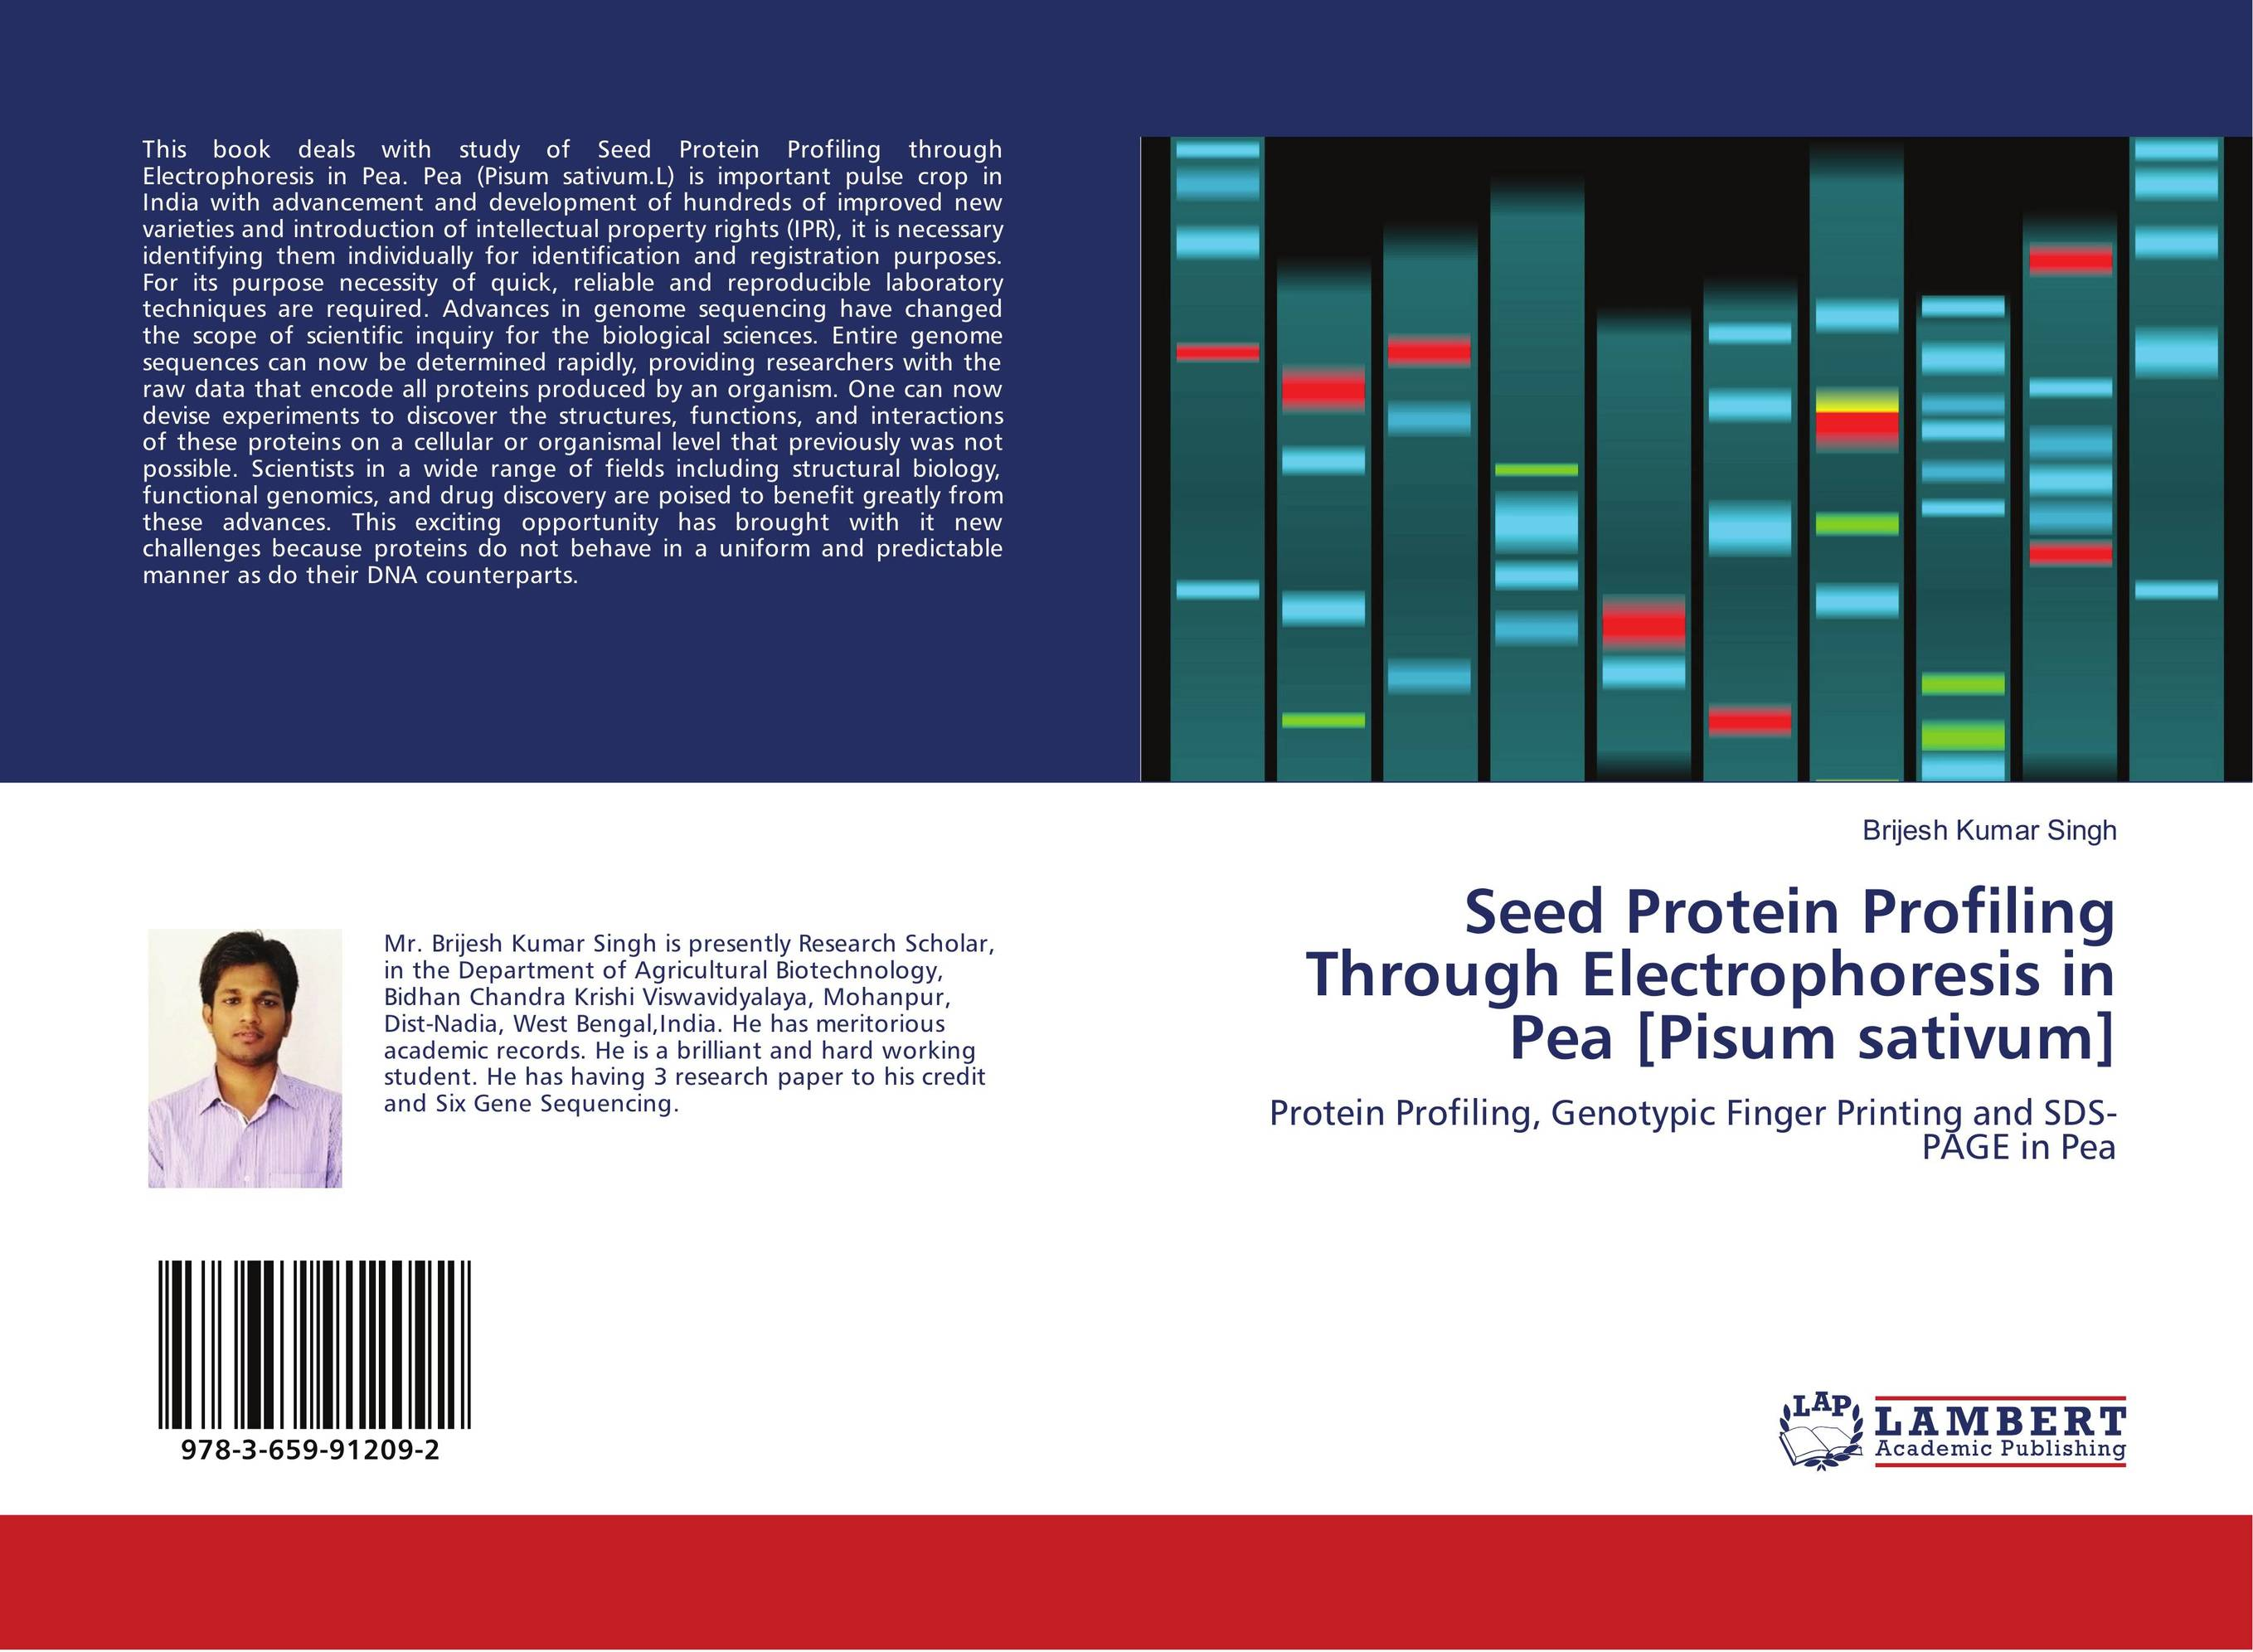 sds page electrophoresis of proteins essay Experiment no 15 protein characterization by electrophoresis abstract the molecular weights of protein extracts were assessed by sodium dodecyl sulfate-polyacrylamide gel electrophoresis (sds-page).